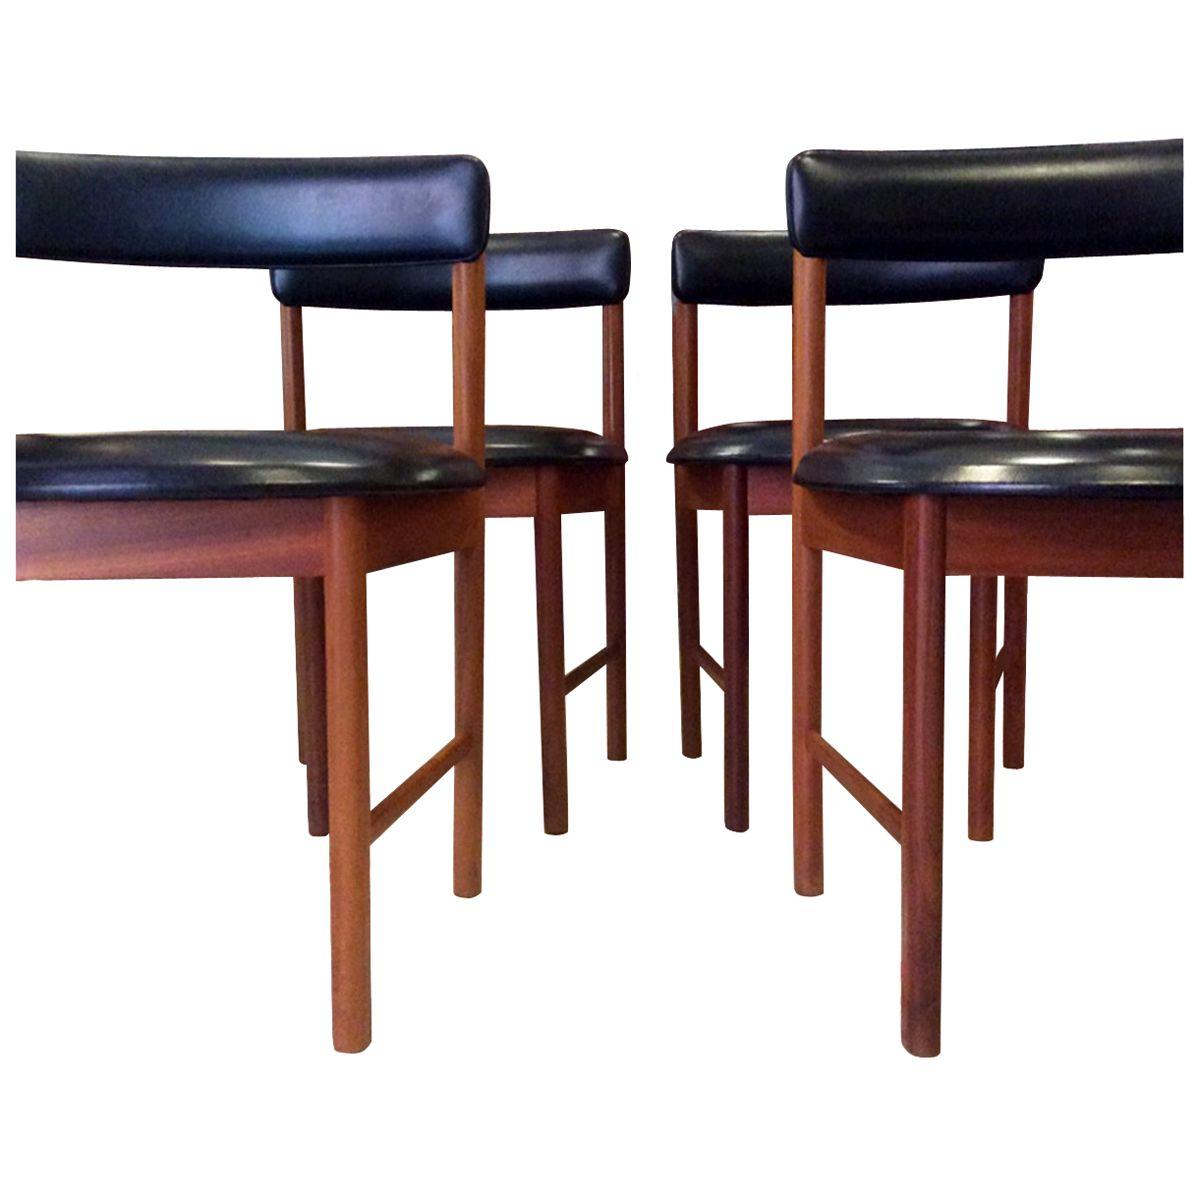 English Dining Chairs 1960s Set of 4 for sale at Pamono : english dining chairs 1960s set of 4 2 from www.pamono.com size 1200 x 1200 jpeg 325kB